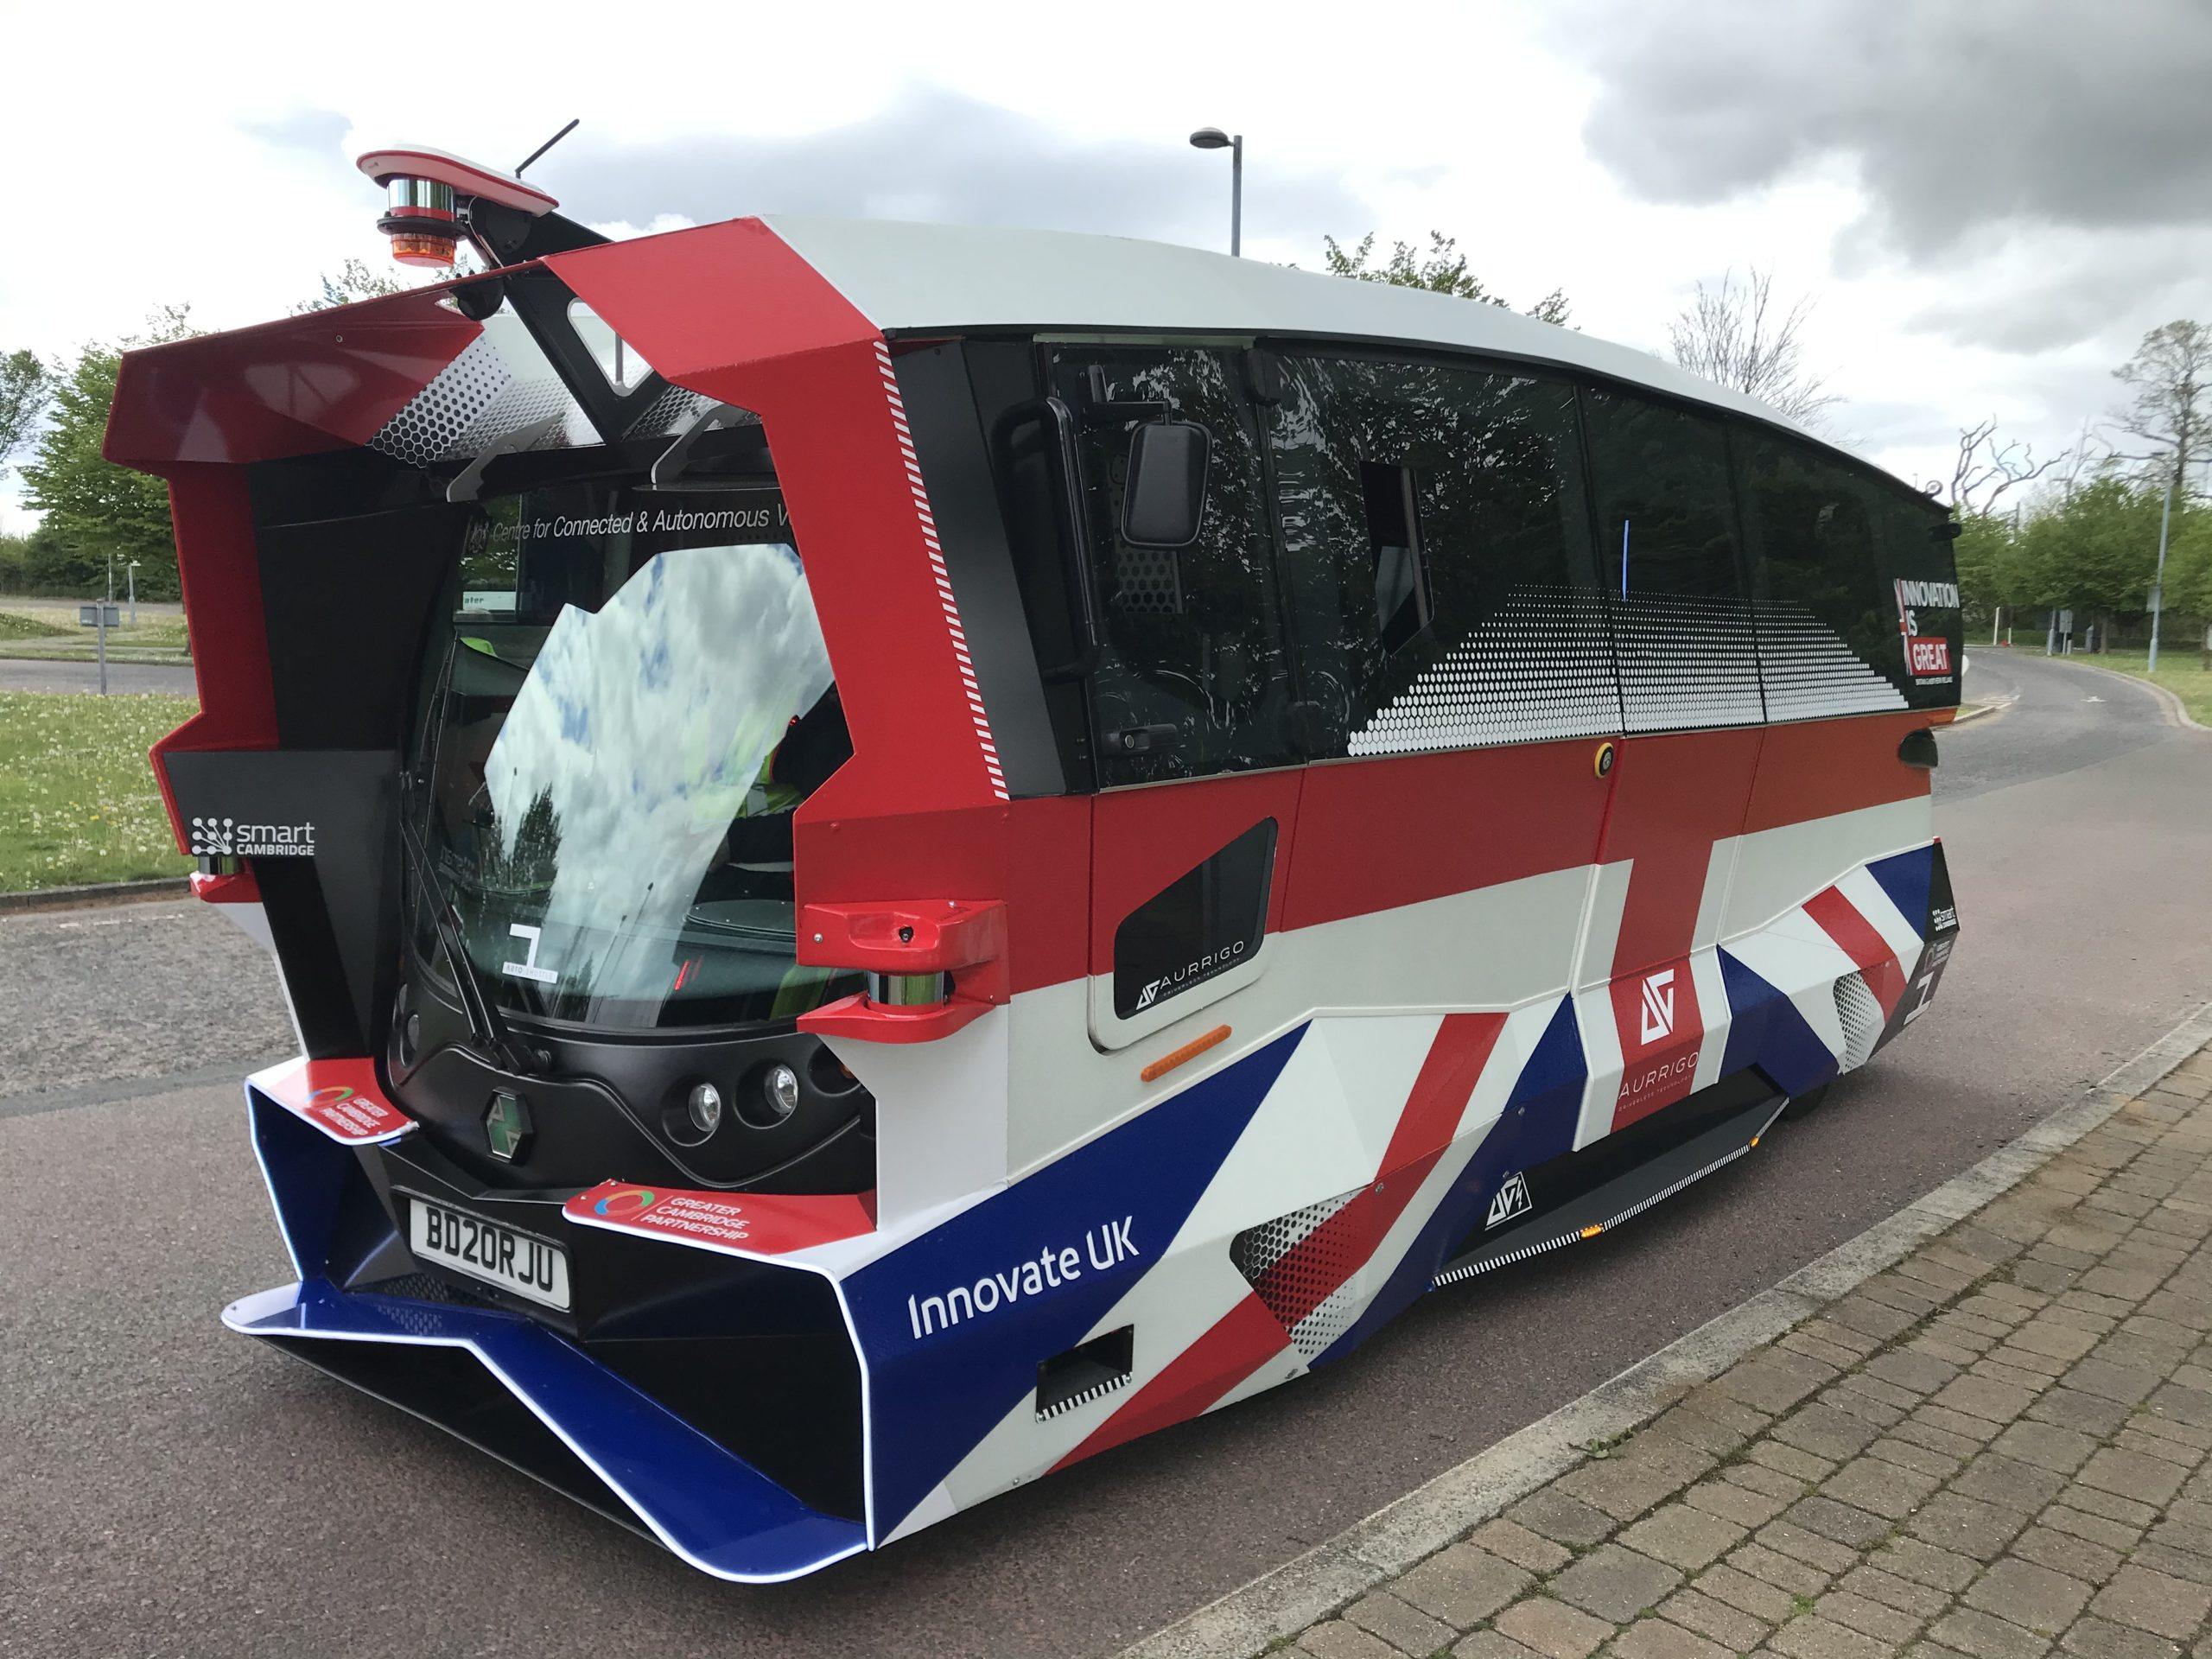 Ground-breaking self-driving shuttles carry passengers in Cambridge road trials